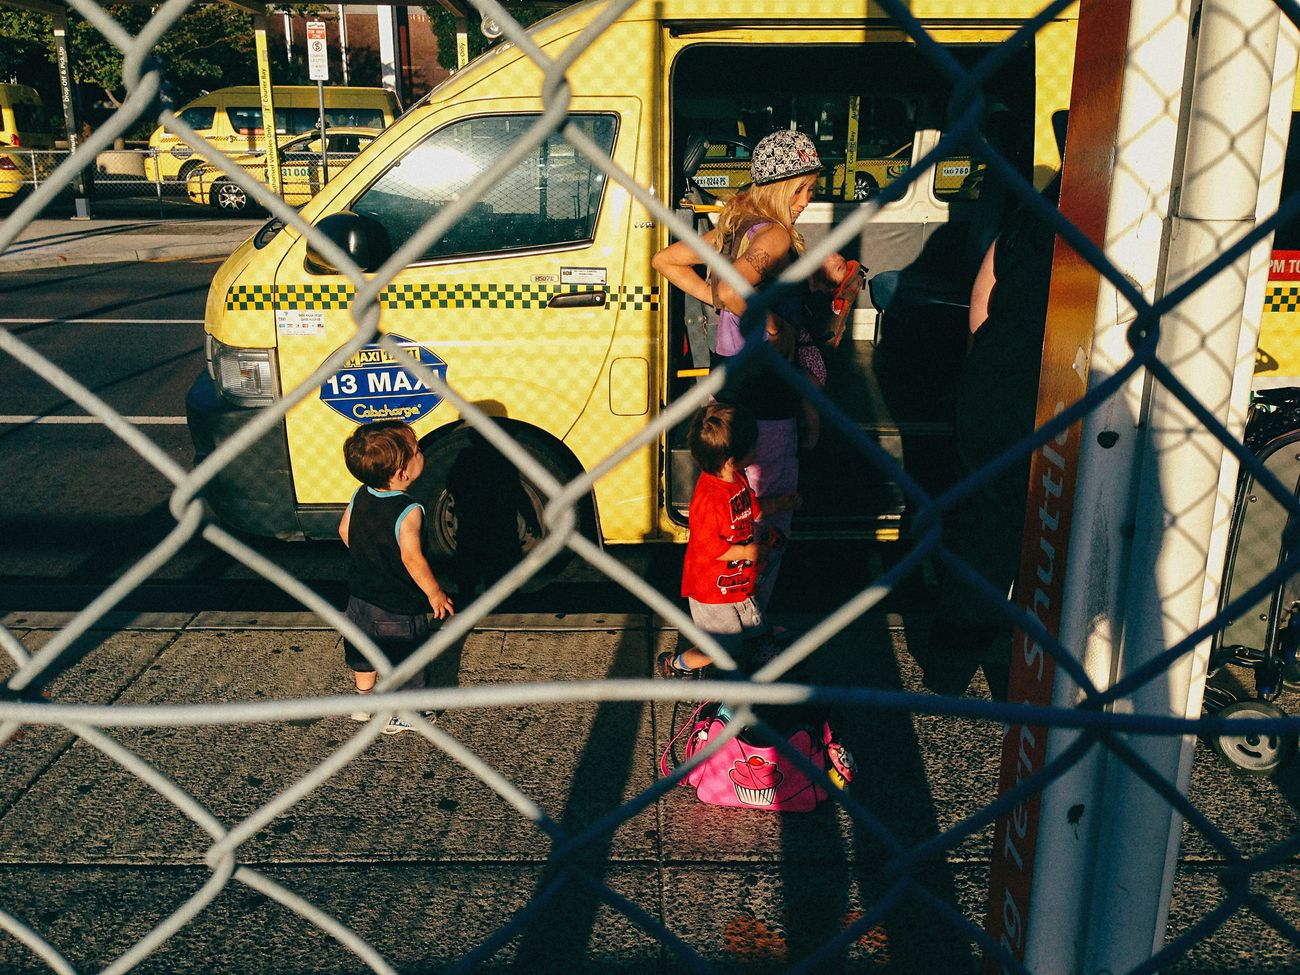 Melbourne Airport, Victoria, 2014 // Entourage Open Edit Streetphotography ProCamera - Shots Of The Year 2014